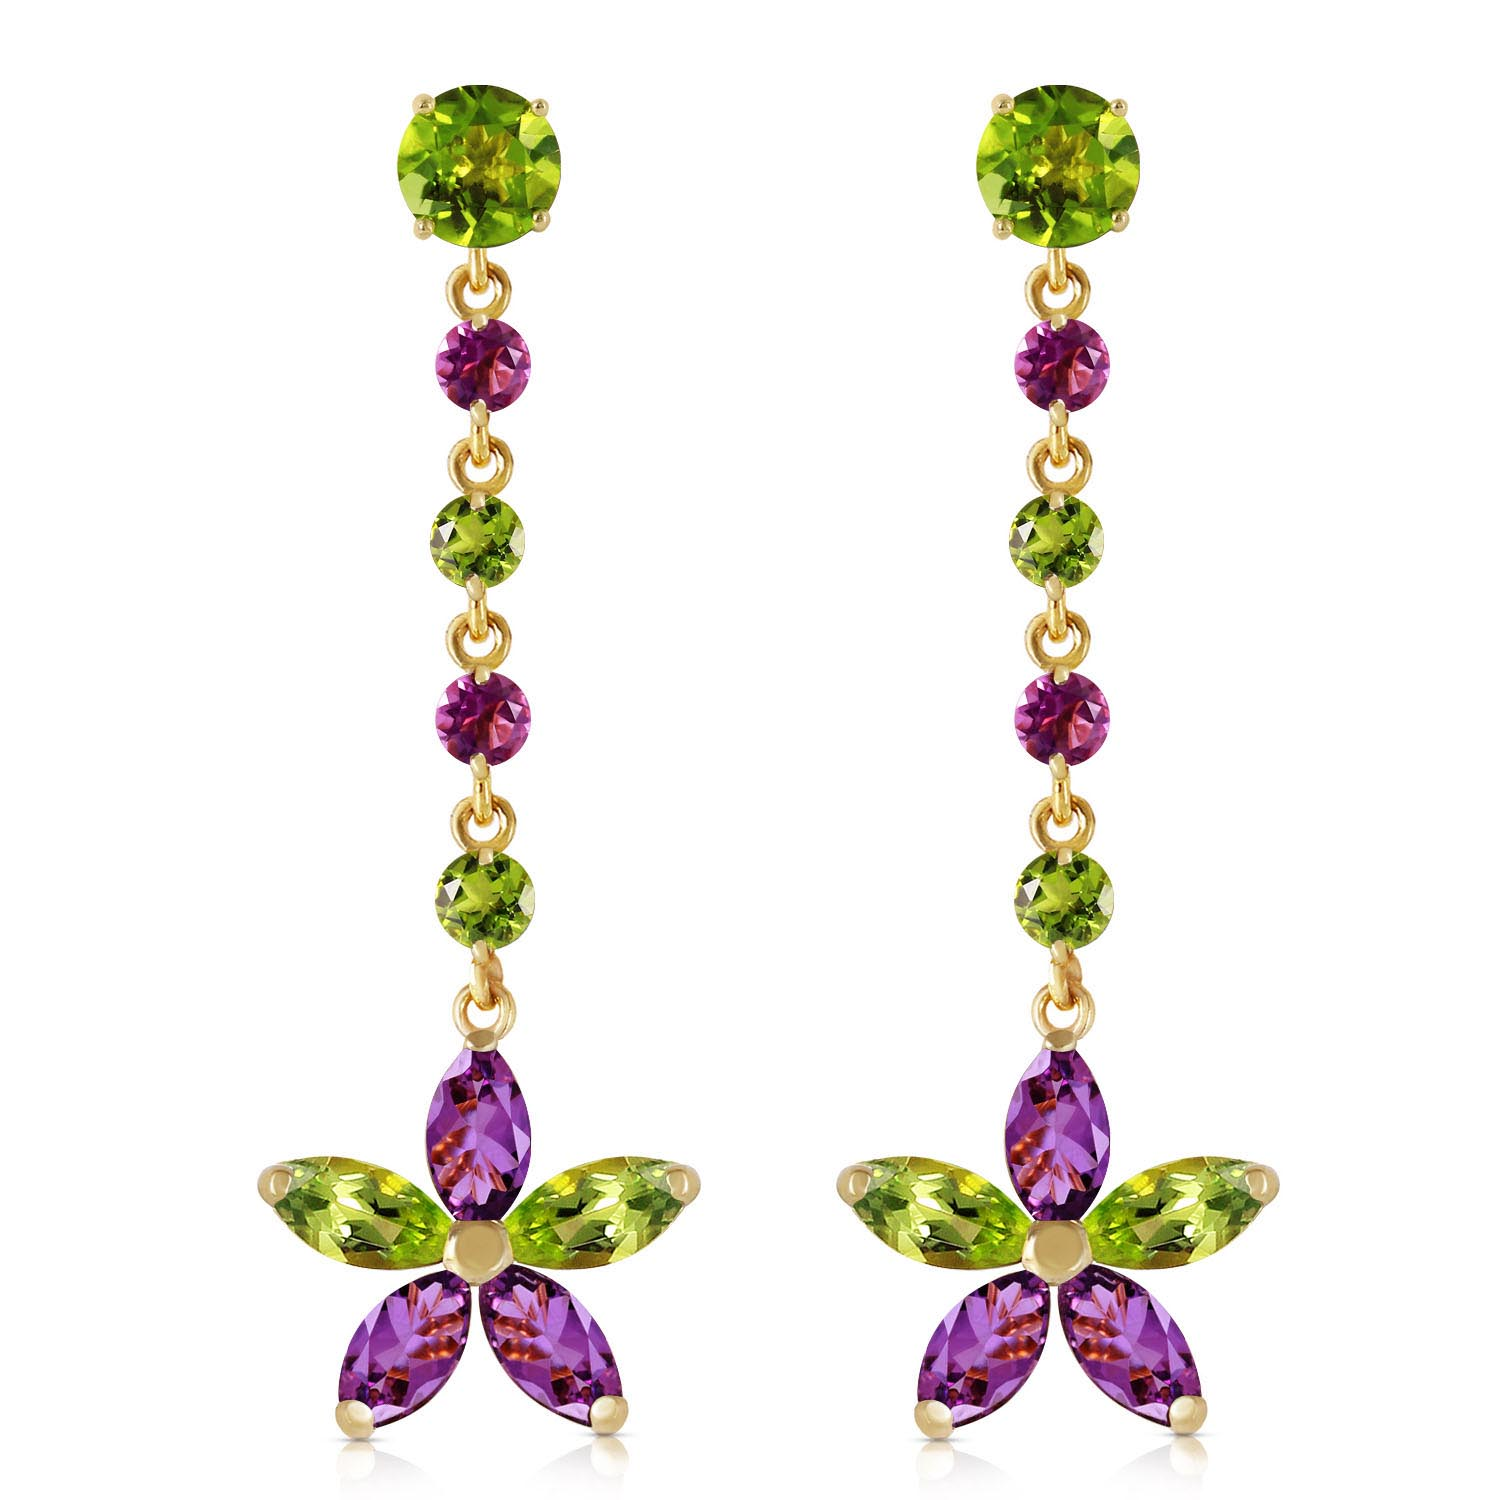 Peridot and Amethyst Daisy Chain Drop Earrings 4.8ctw in 9ct Gold